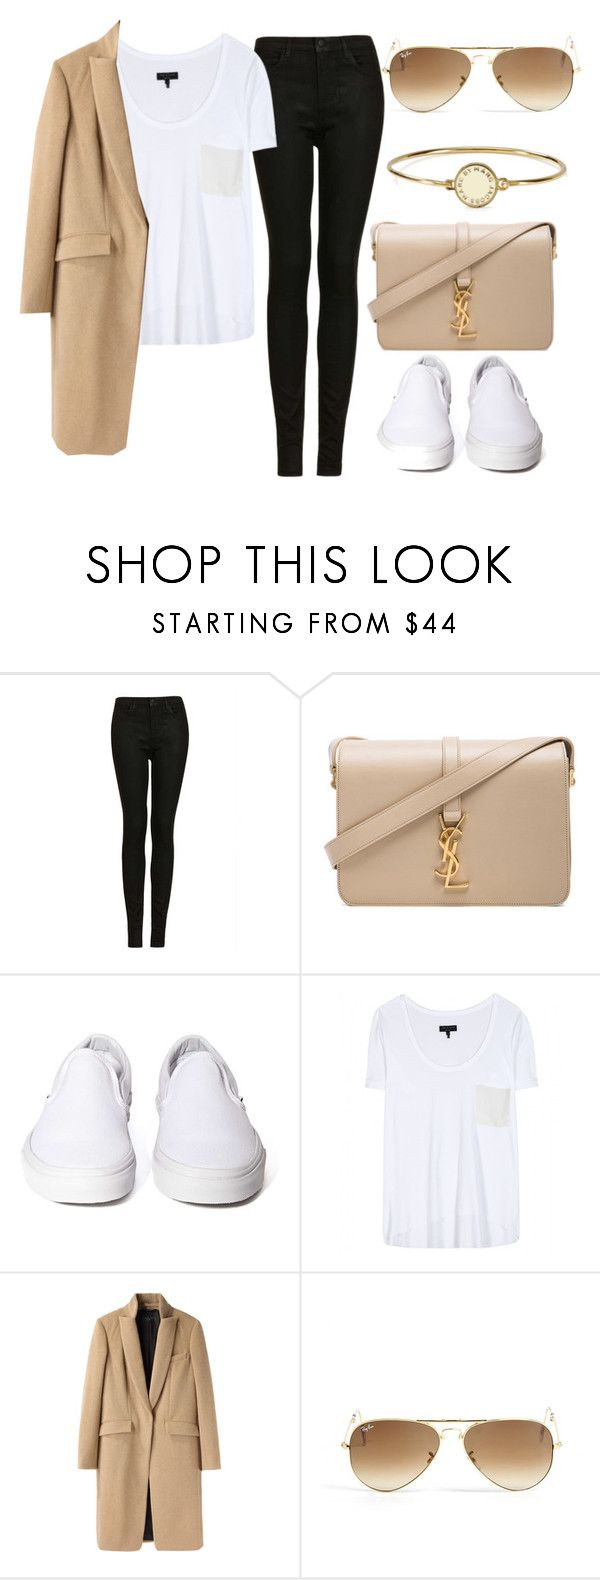 """""""Geen titel #305"""" by beautstakingovertheworld ❤ liked on Polyvore featuring Topshop, Yves Saint Laurent, Vans, rag & bone, Ray-Ban and Marc by Marc Jacobs"""